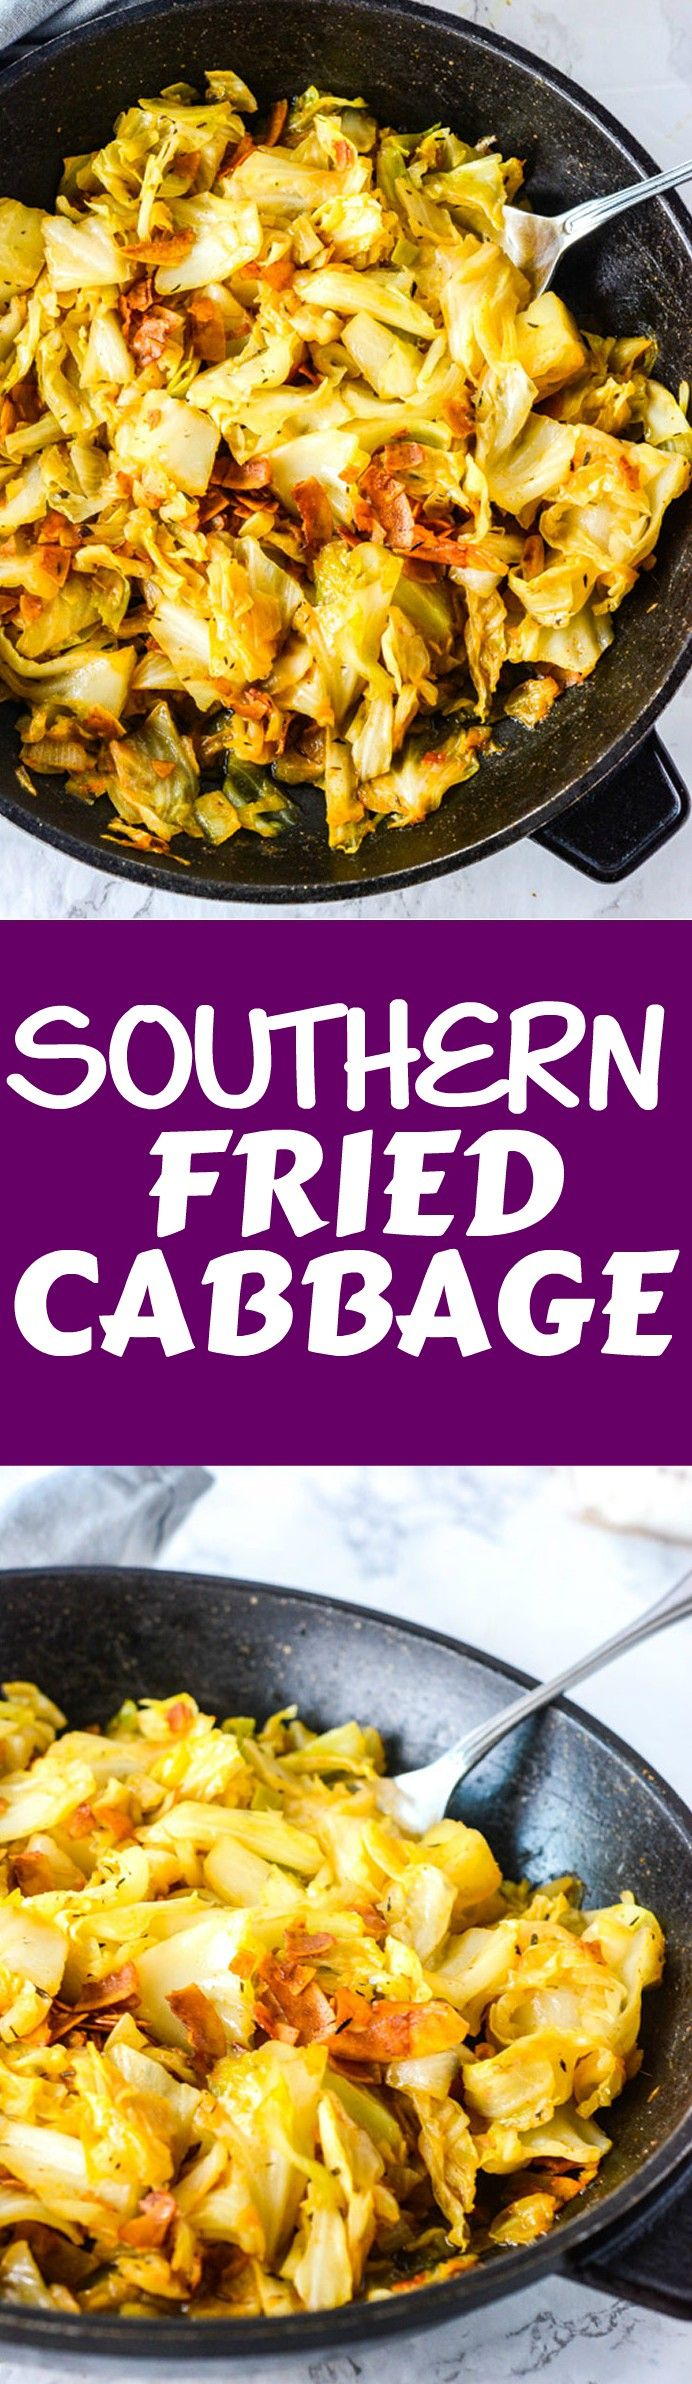 Southern Vegan Fried Cabbage